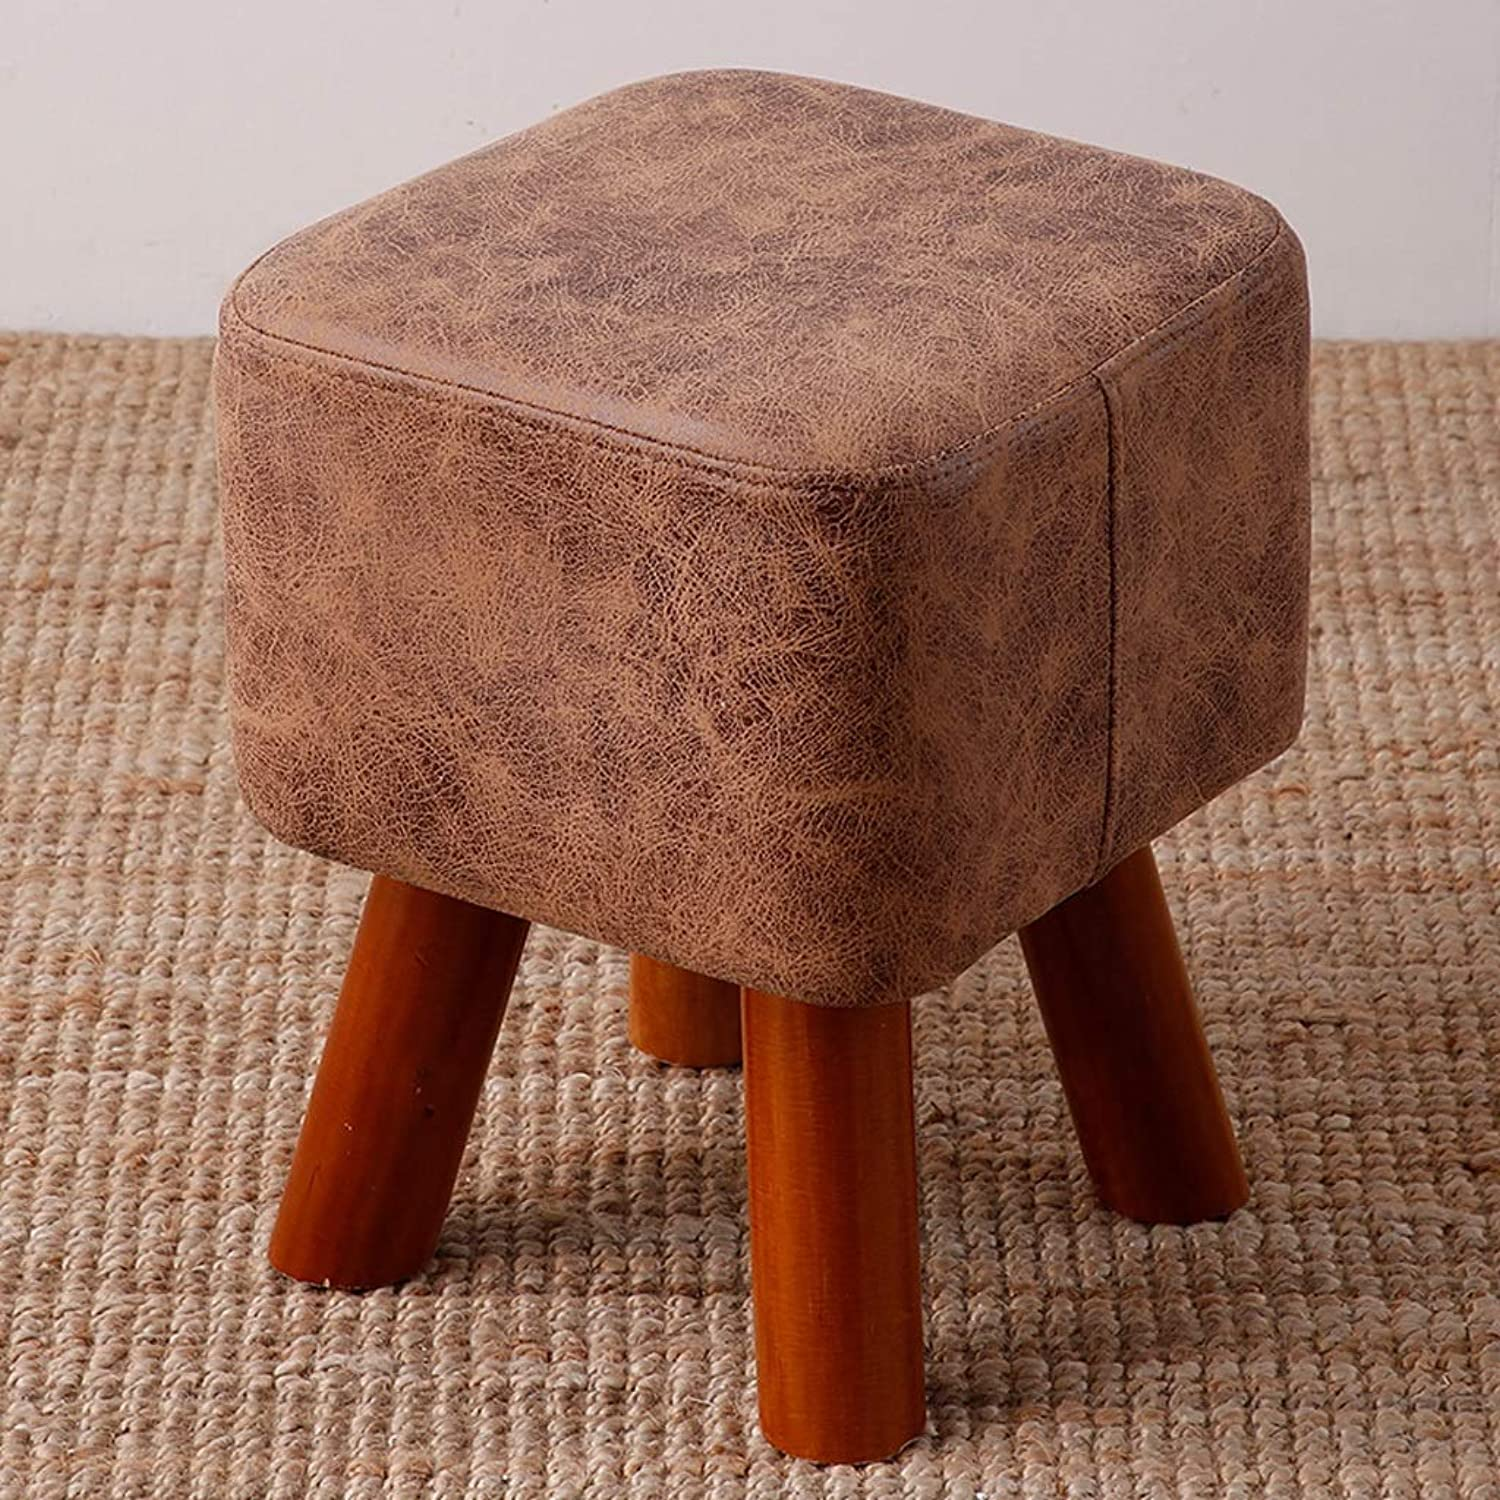 CXQ Modern Creative Stool Home Living Room Fashion Solid Wood Fabric Square Stool Sofa Stool Change shoes Bench Light Brown Bench (Size   L)